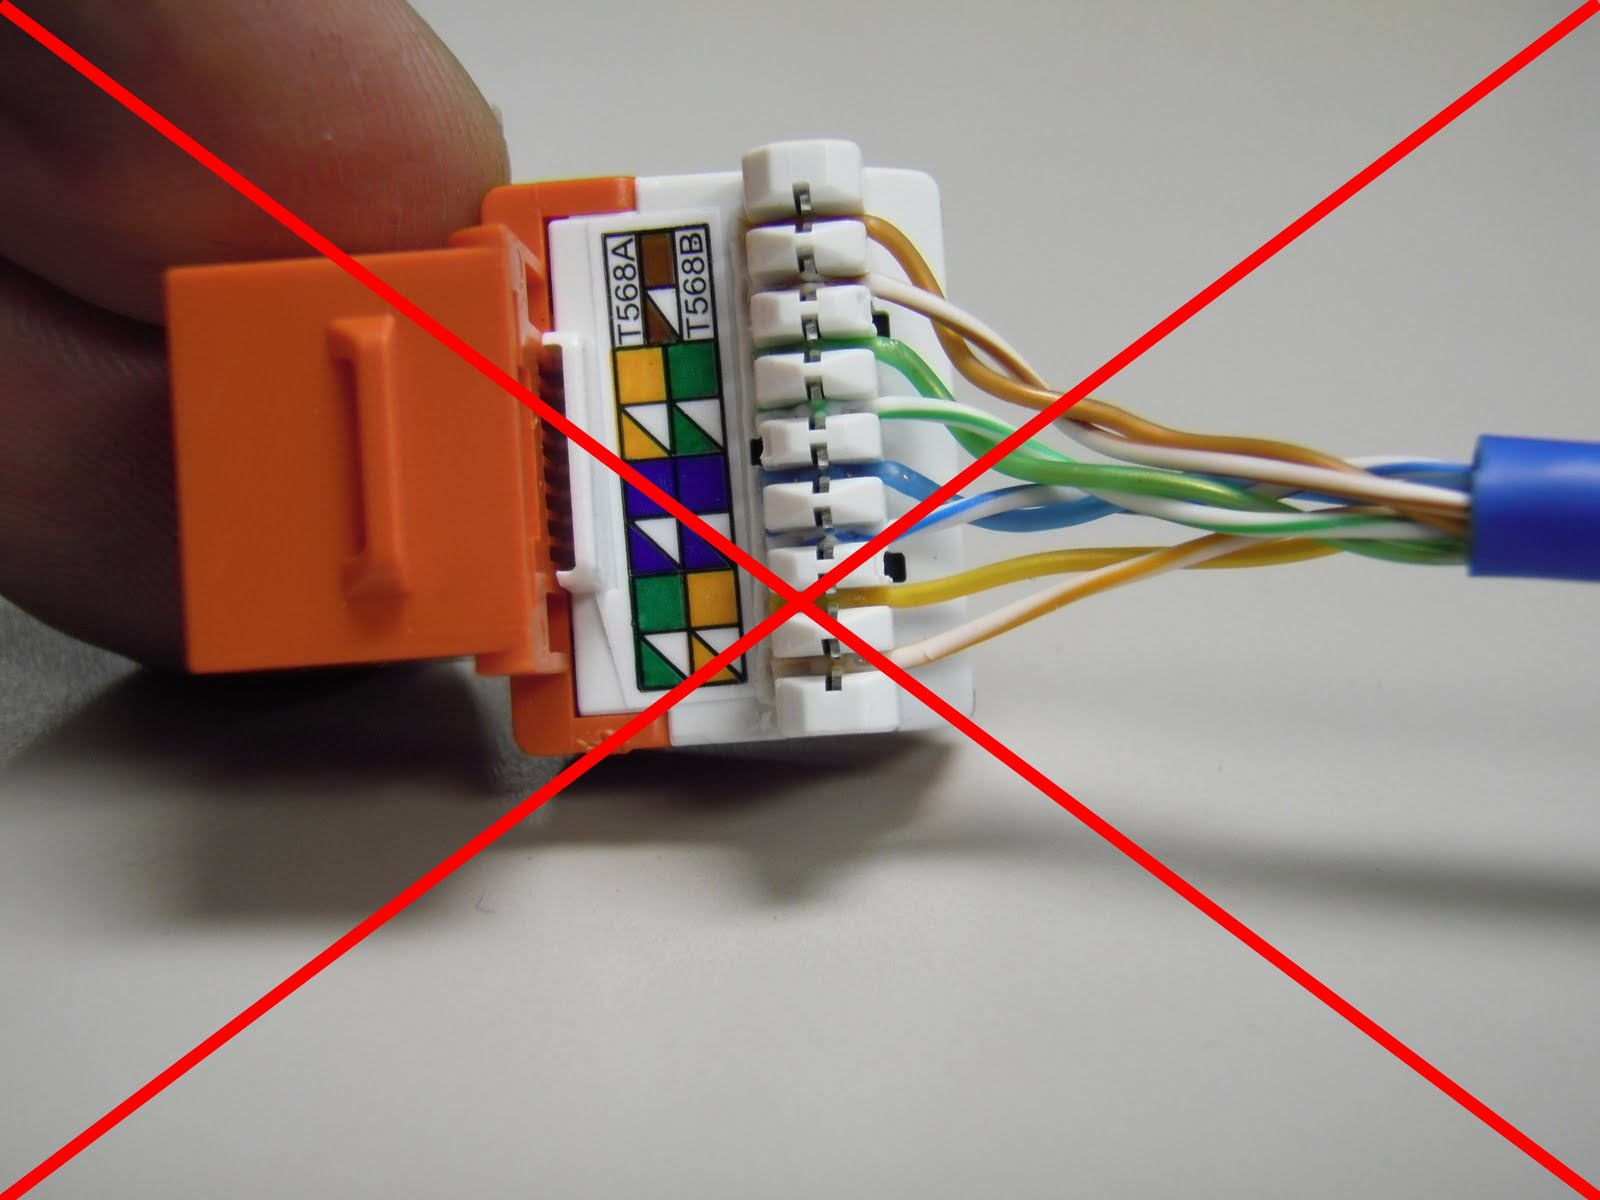 CAT5E+ER+JACK+PUNCHED+WRONG+RED+X the trench how to punch down cat5e cat6 keystone jacks keystone wiring diagrams at bayanpartner.co